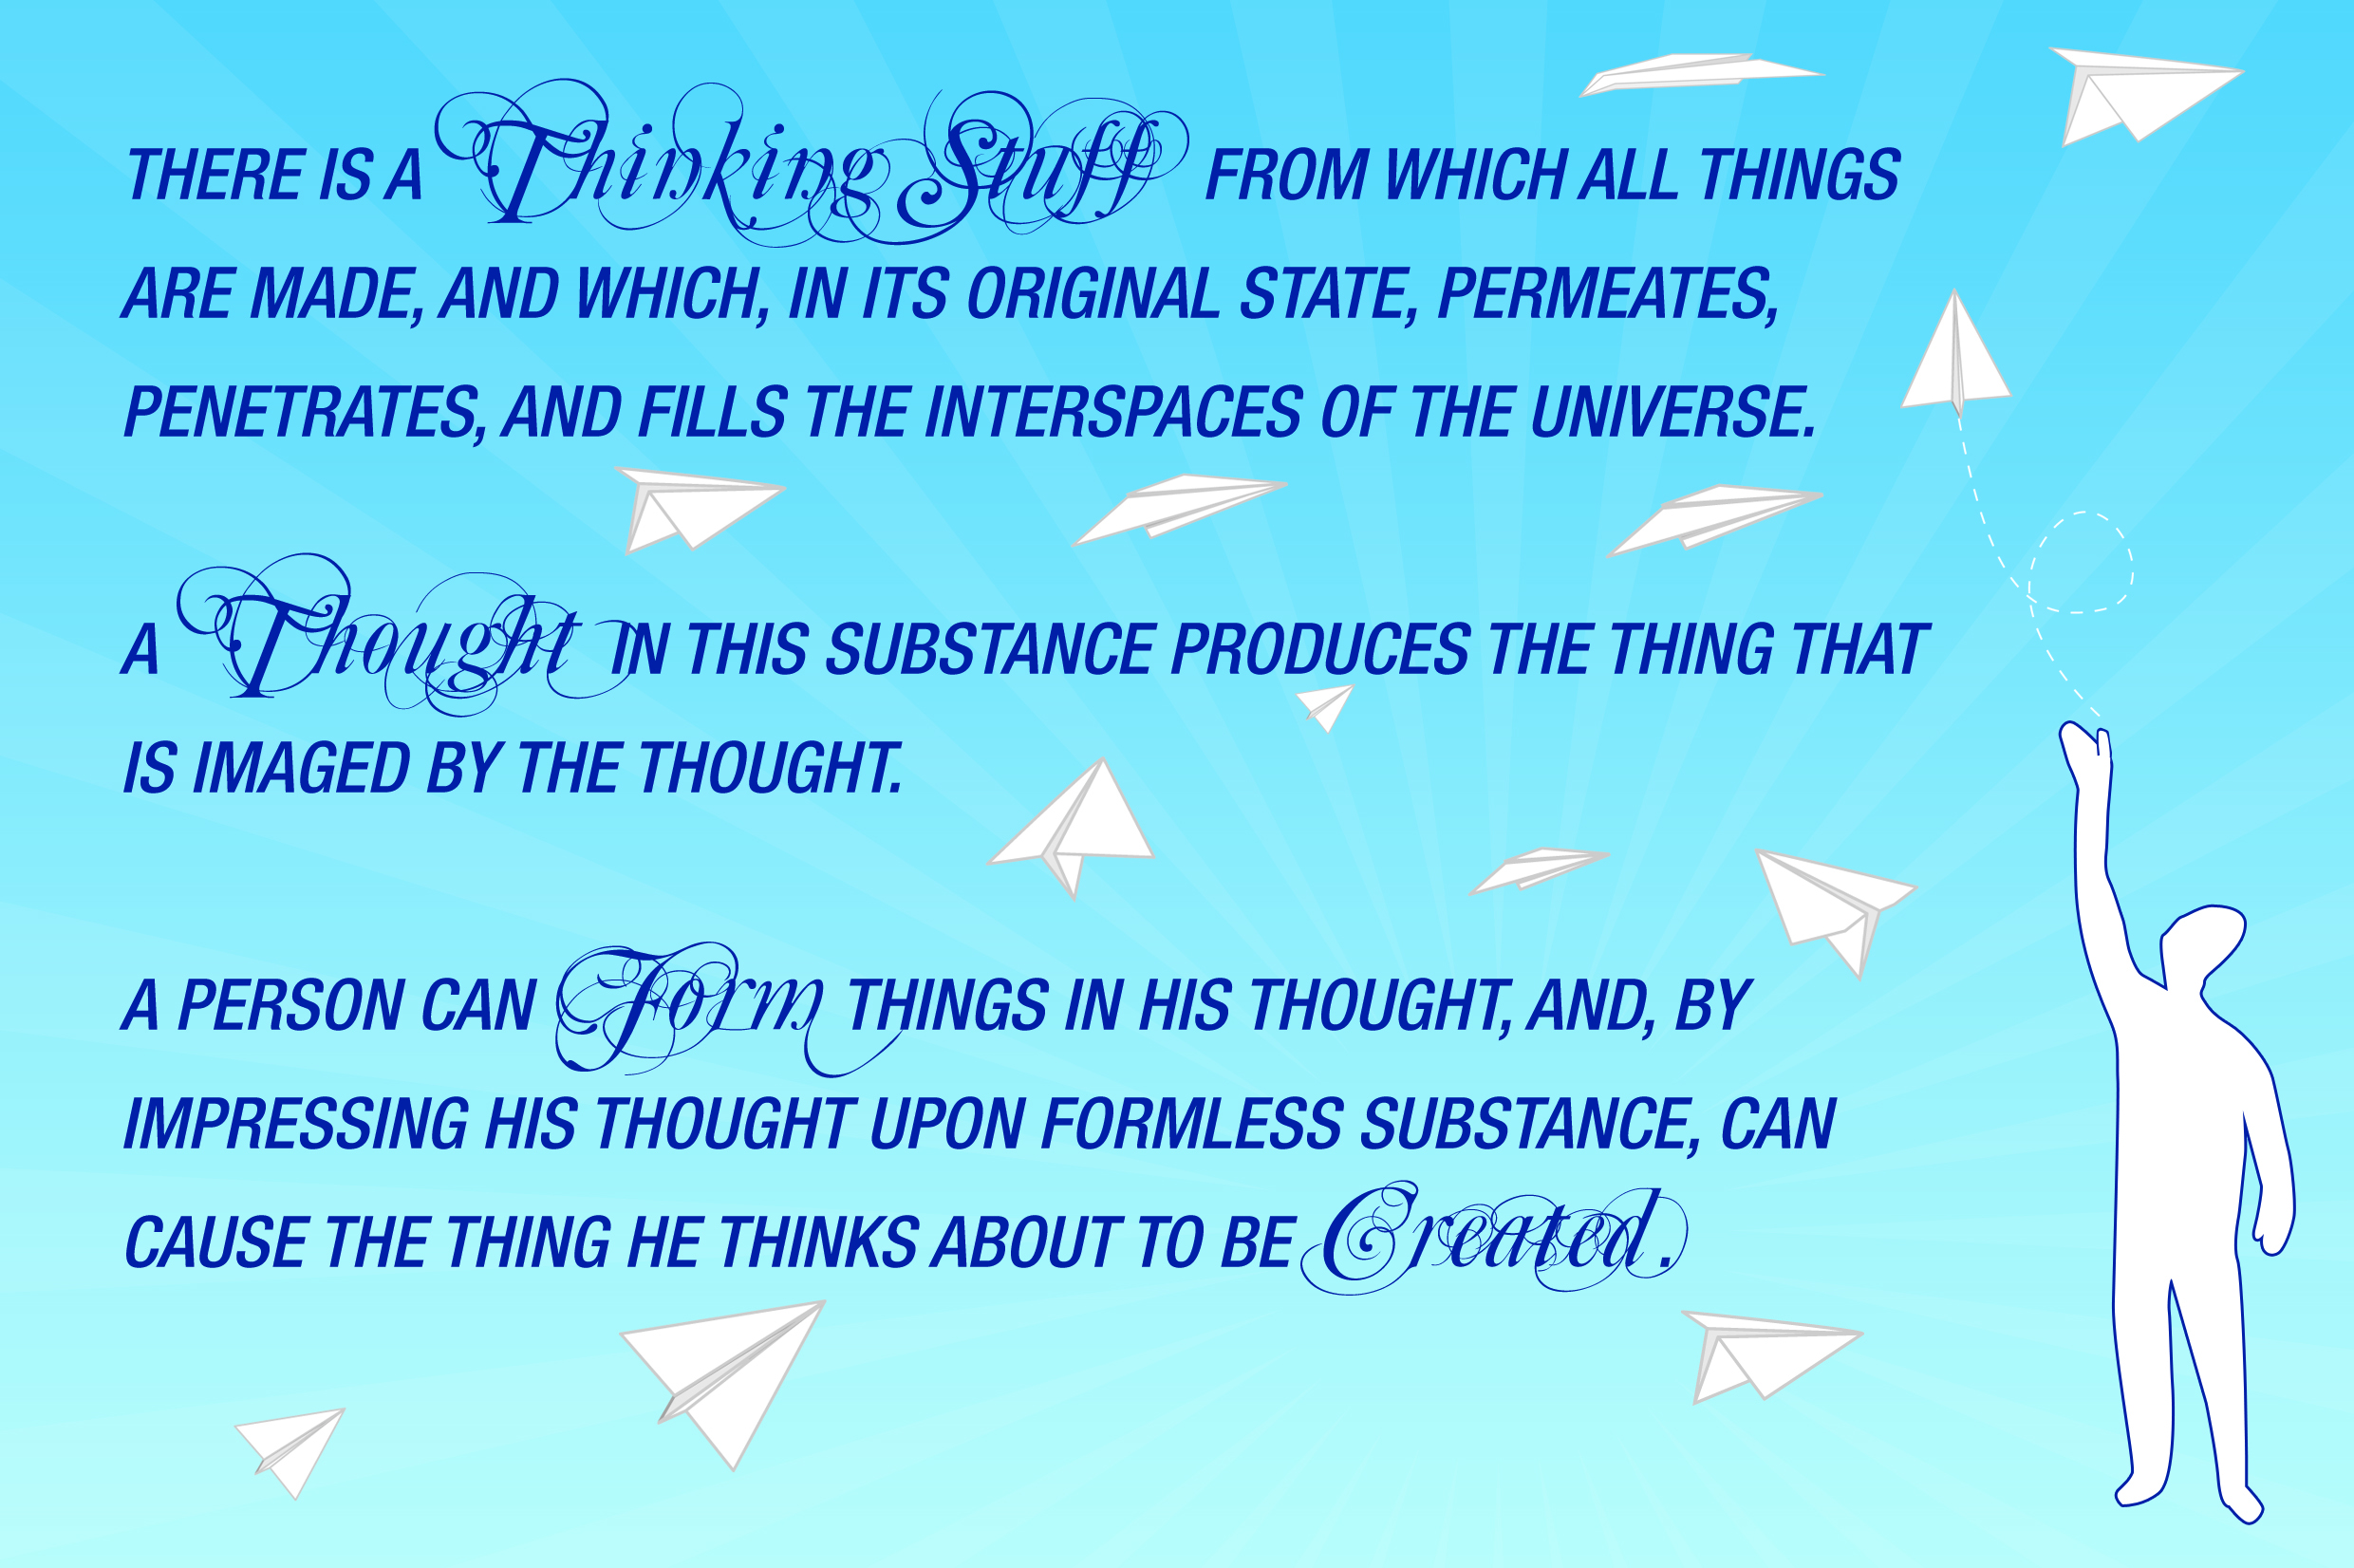 Impress your thoughts